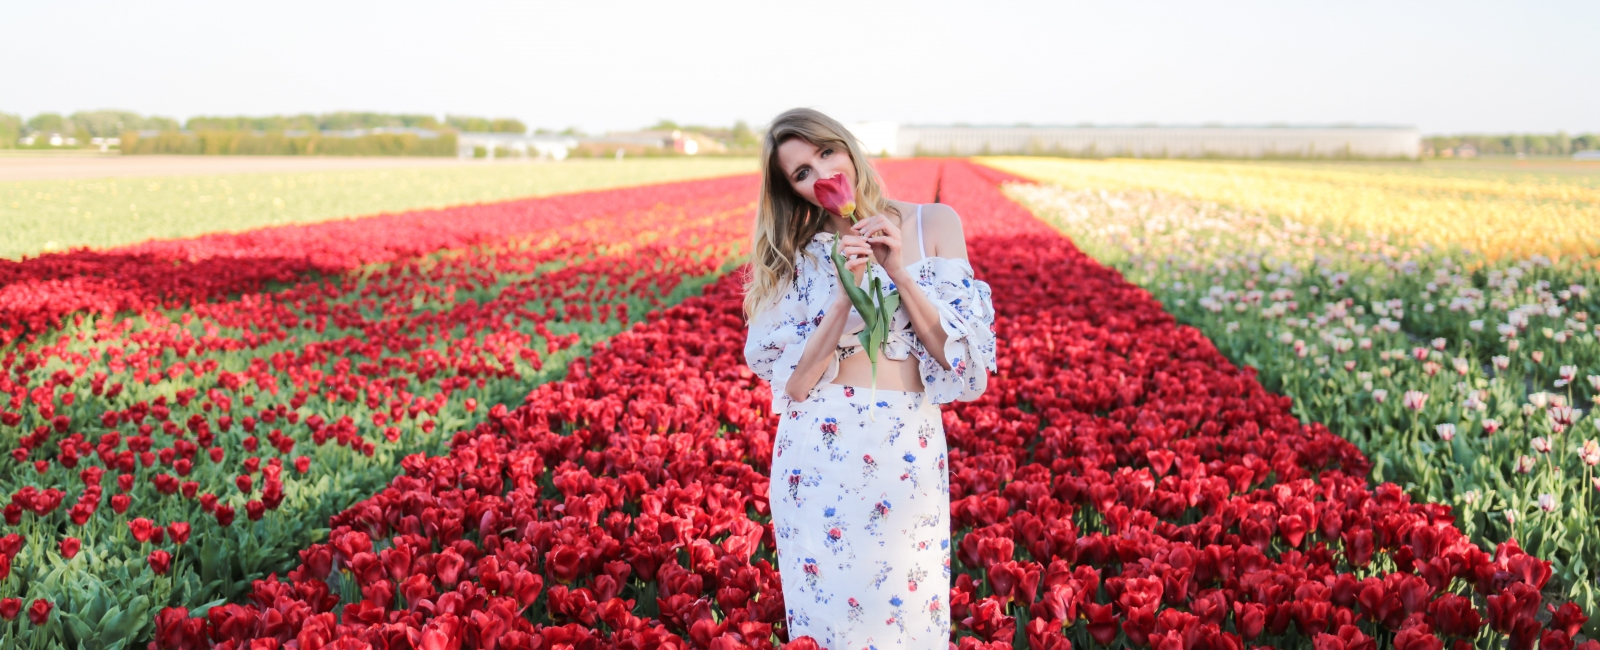 MOD-by-Monique-Fashion-Looks-Tulip-Field-May-2018